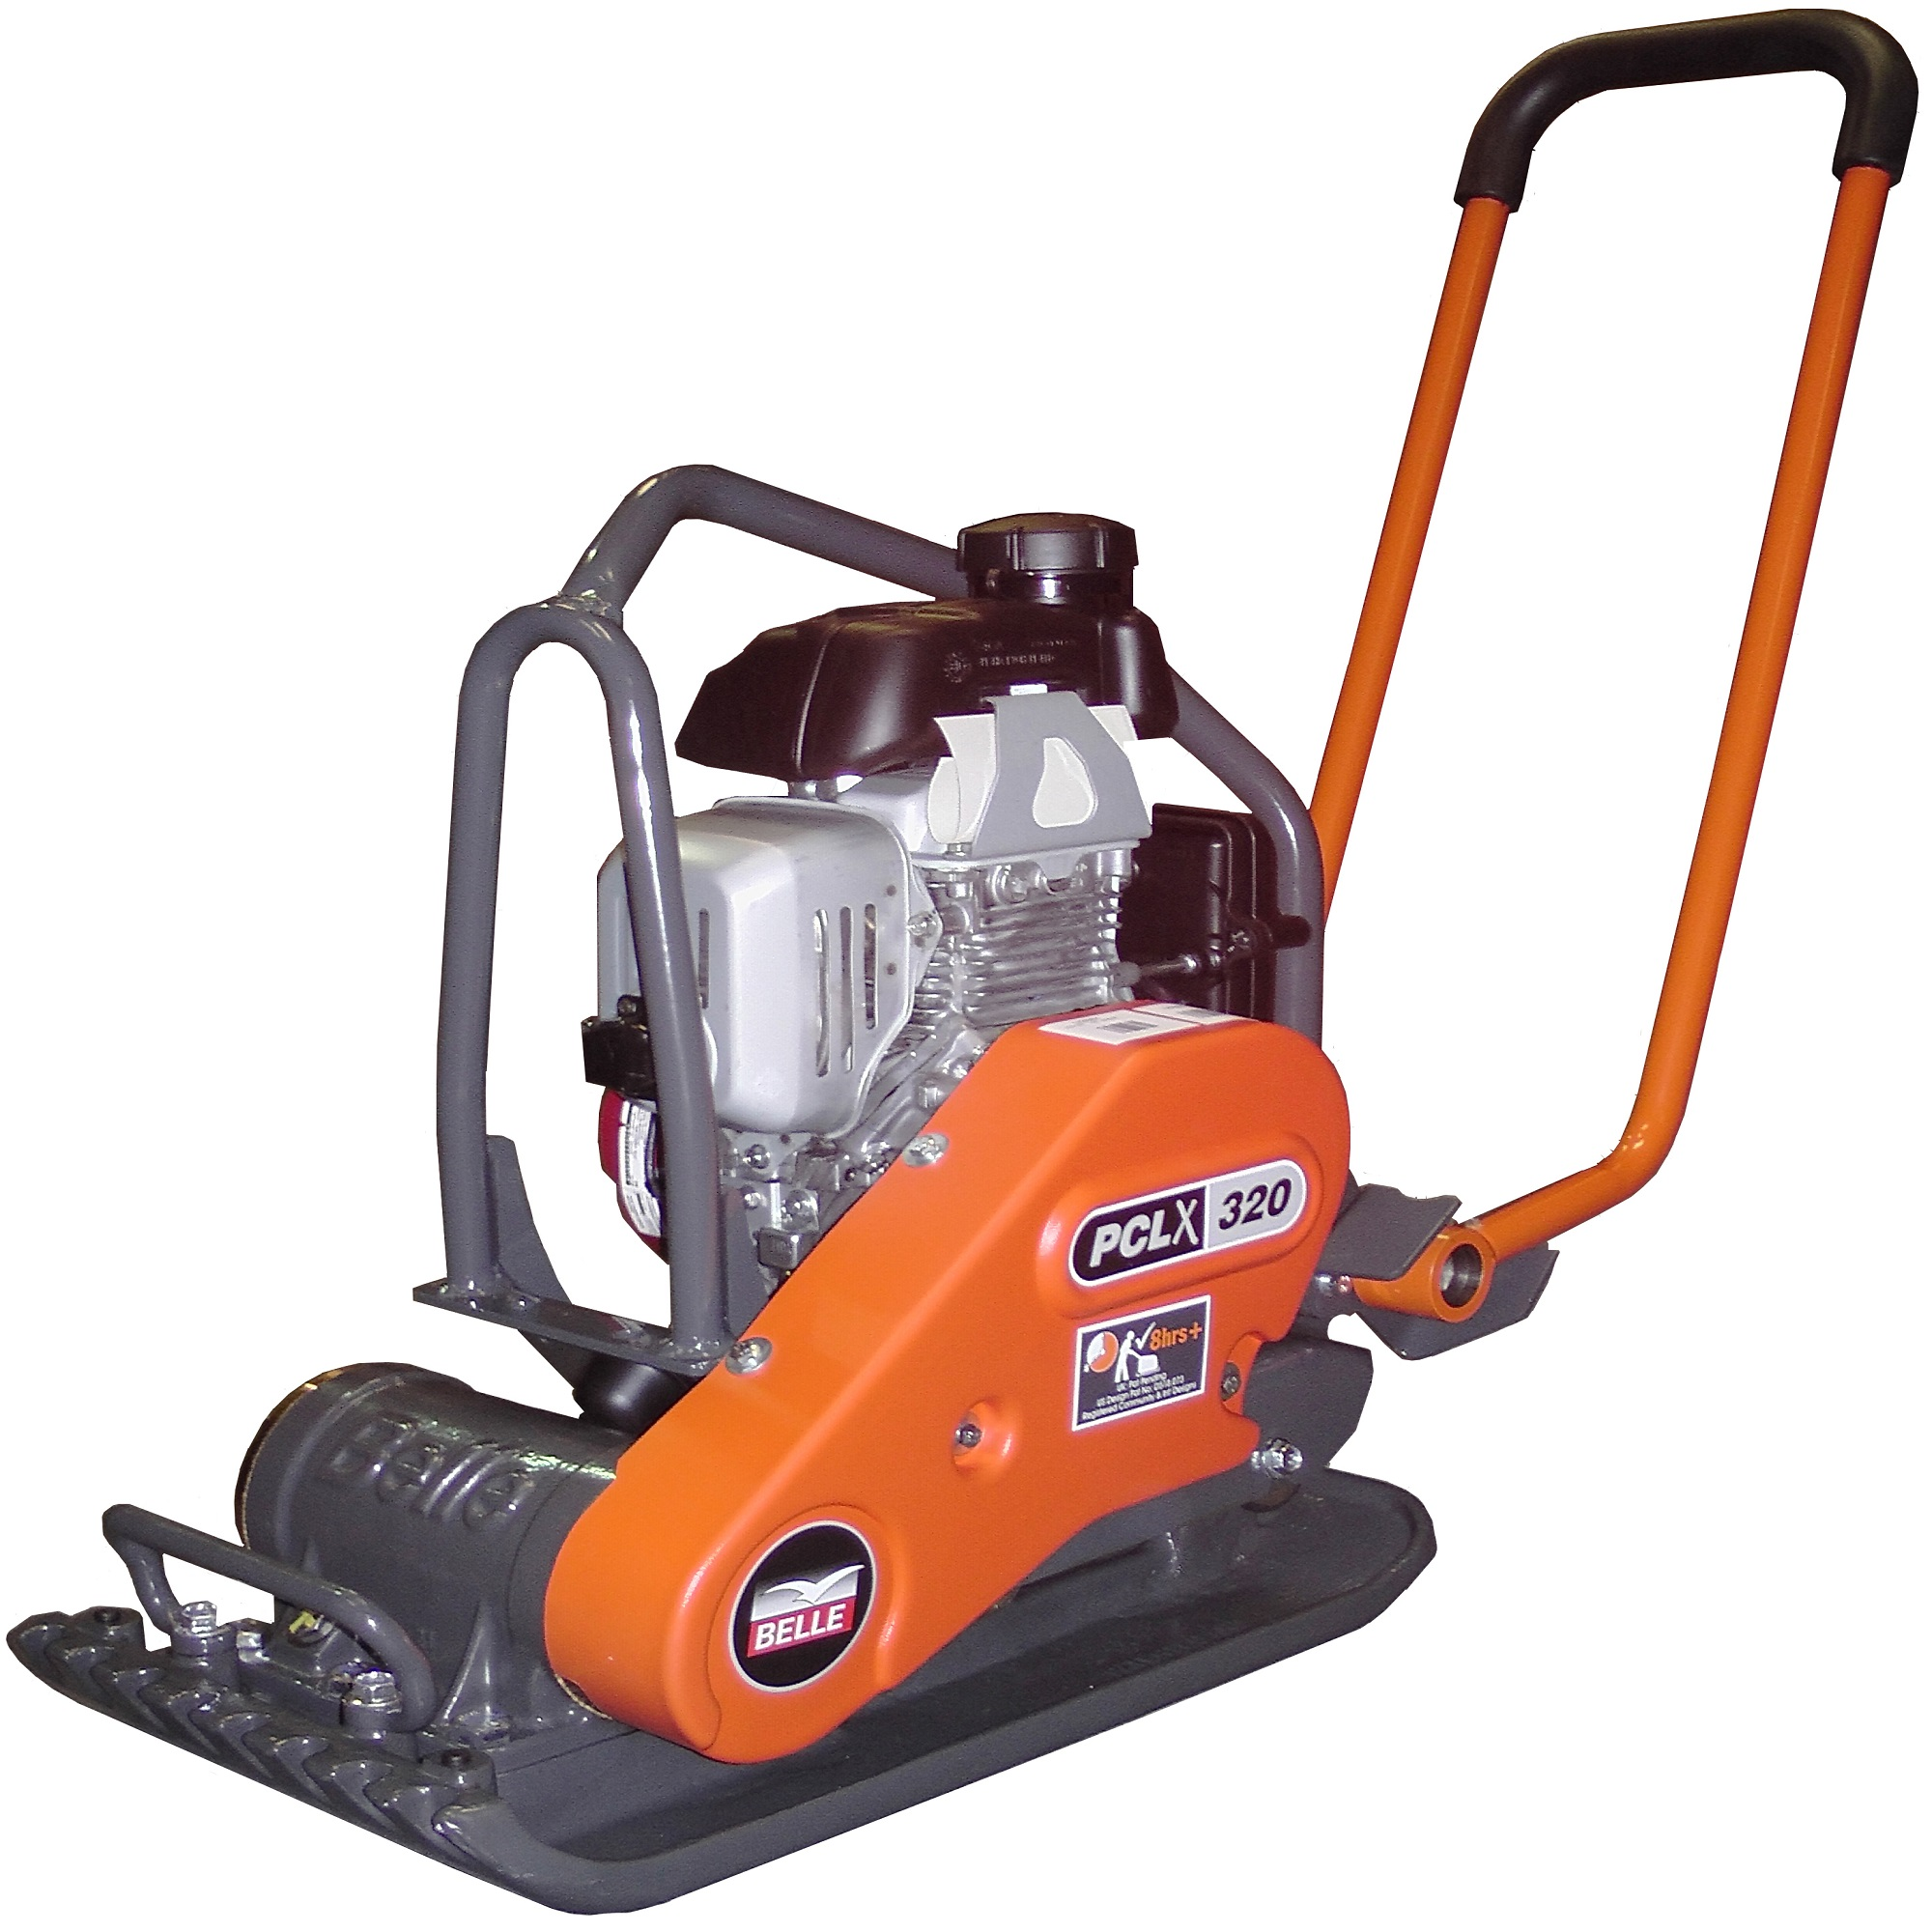 Belle PCLX 400 wacker plate compactor with Honda petrol engine with protective metal frame and low hand-arm vibration handle